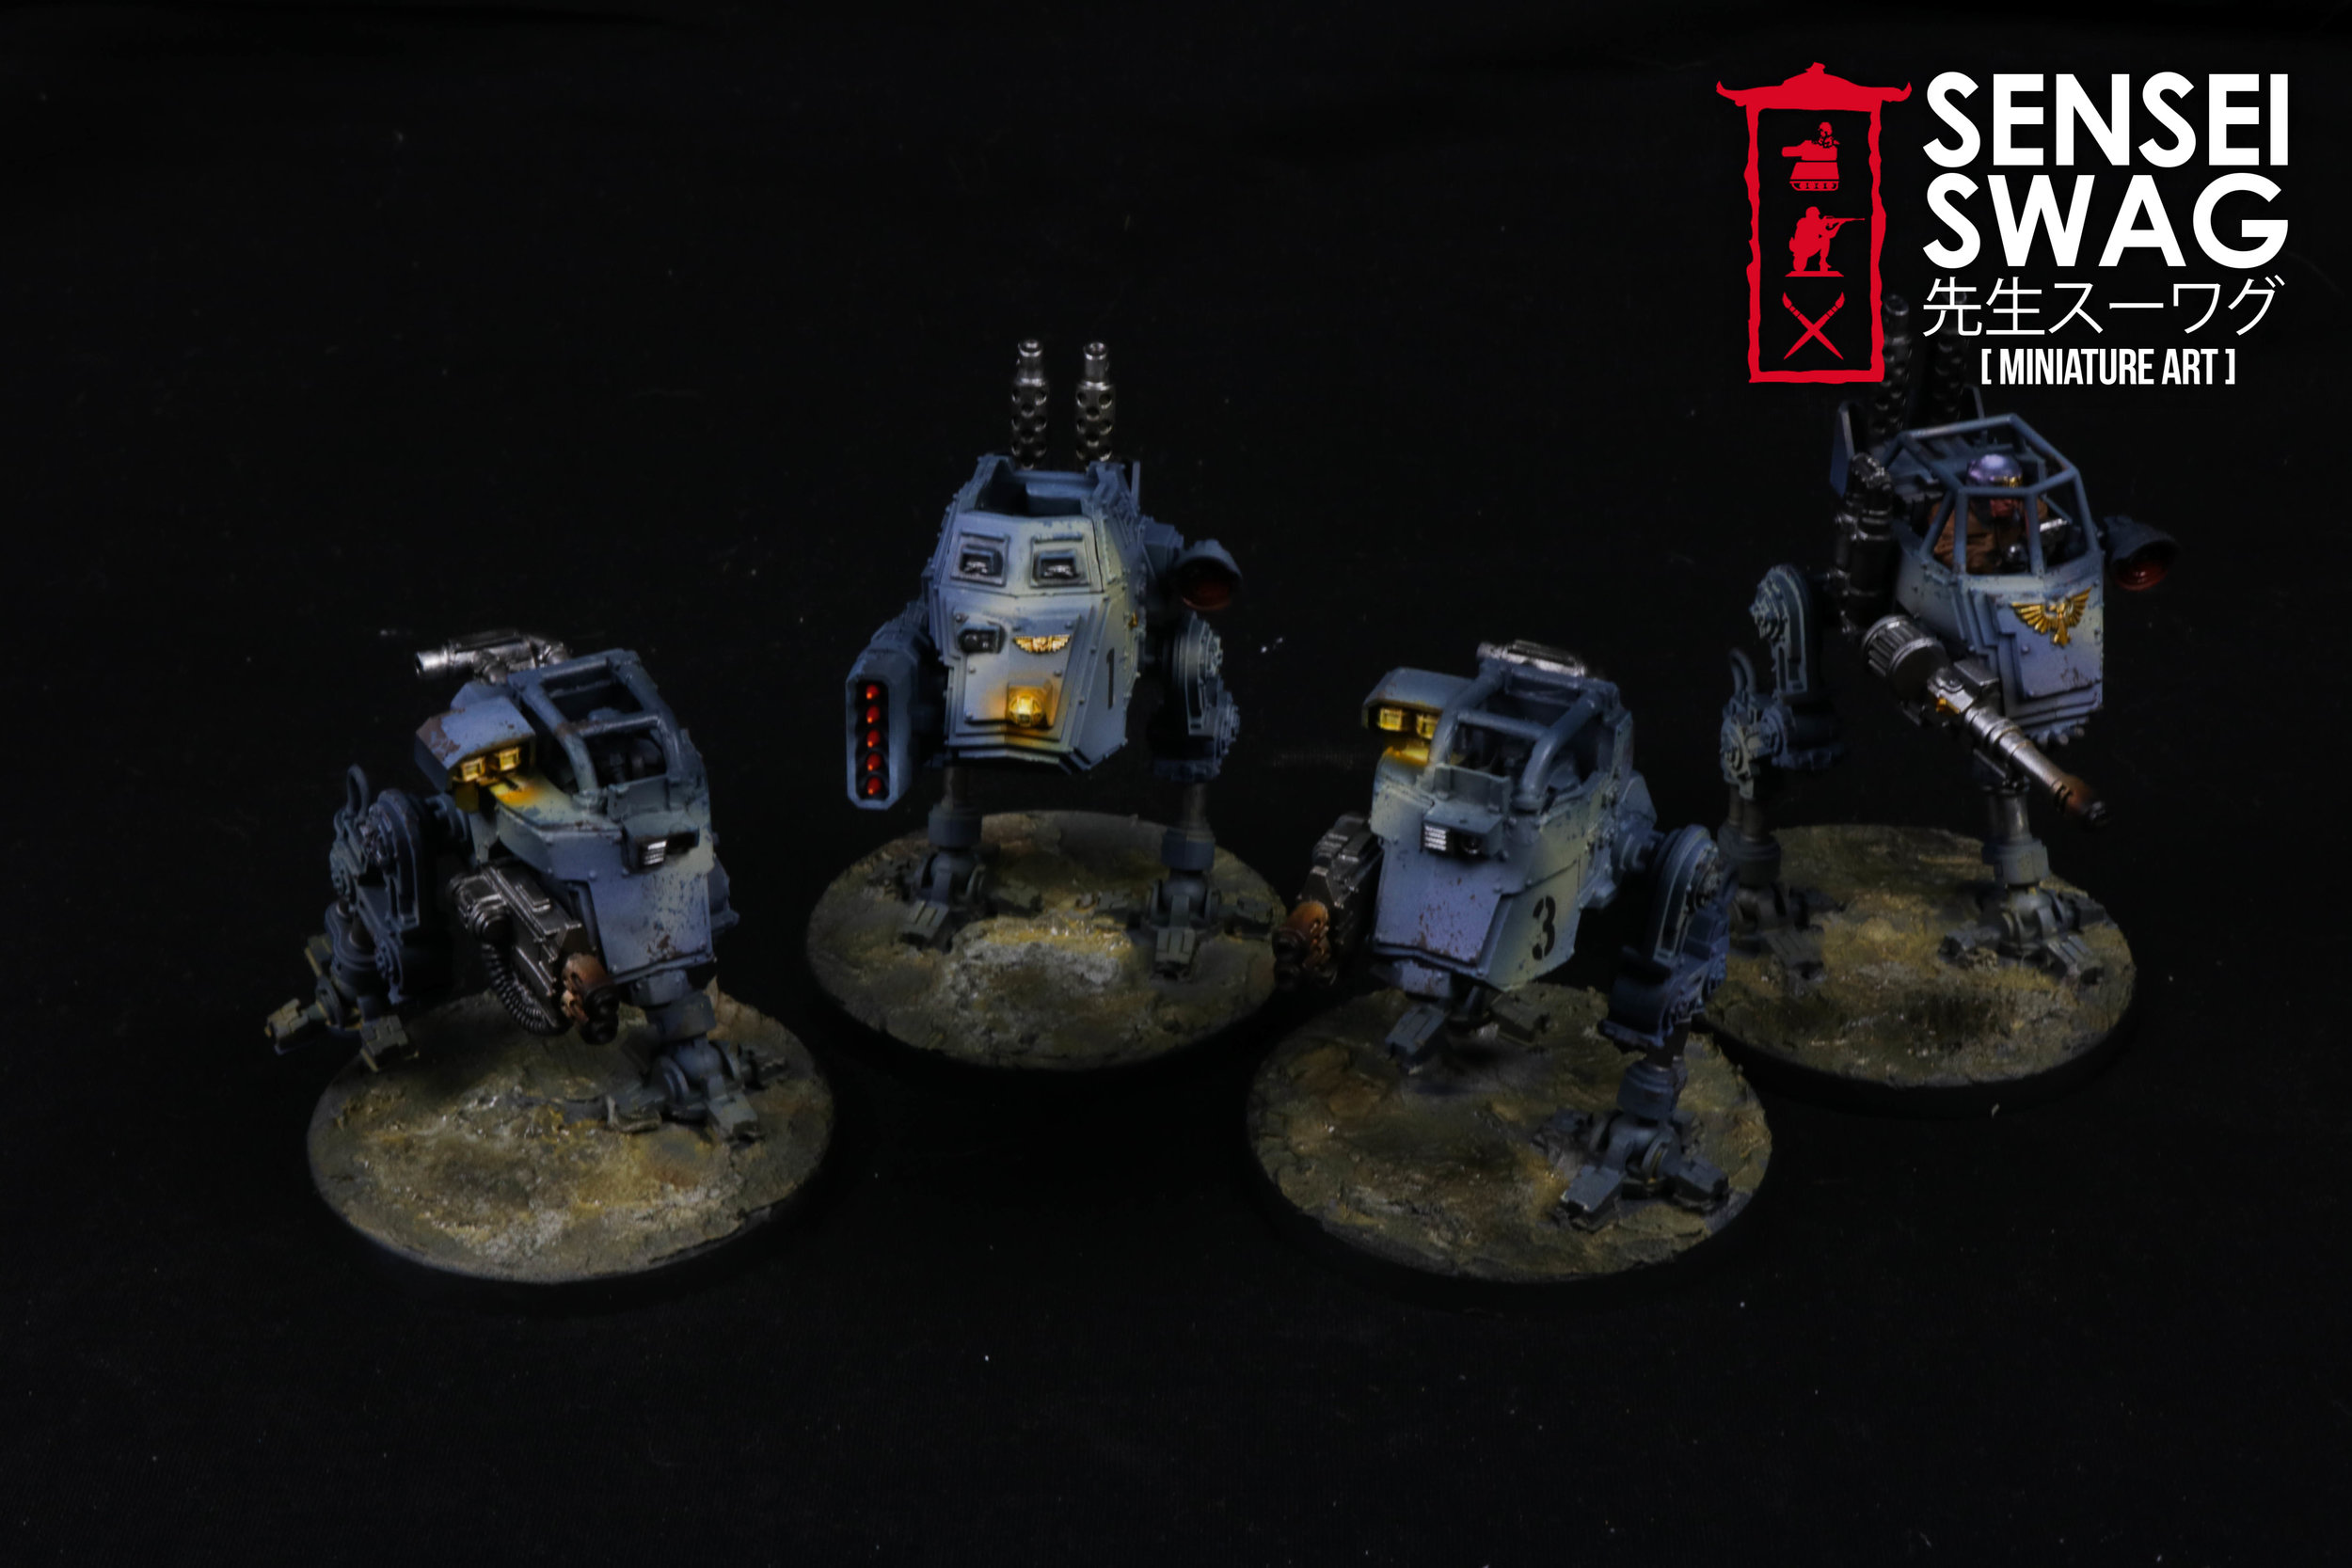 Imperial Guard Tempestus Scions Baneblade glowing lights 40k Tank-7.jpg